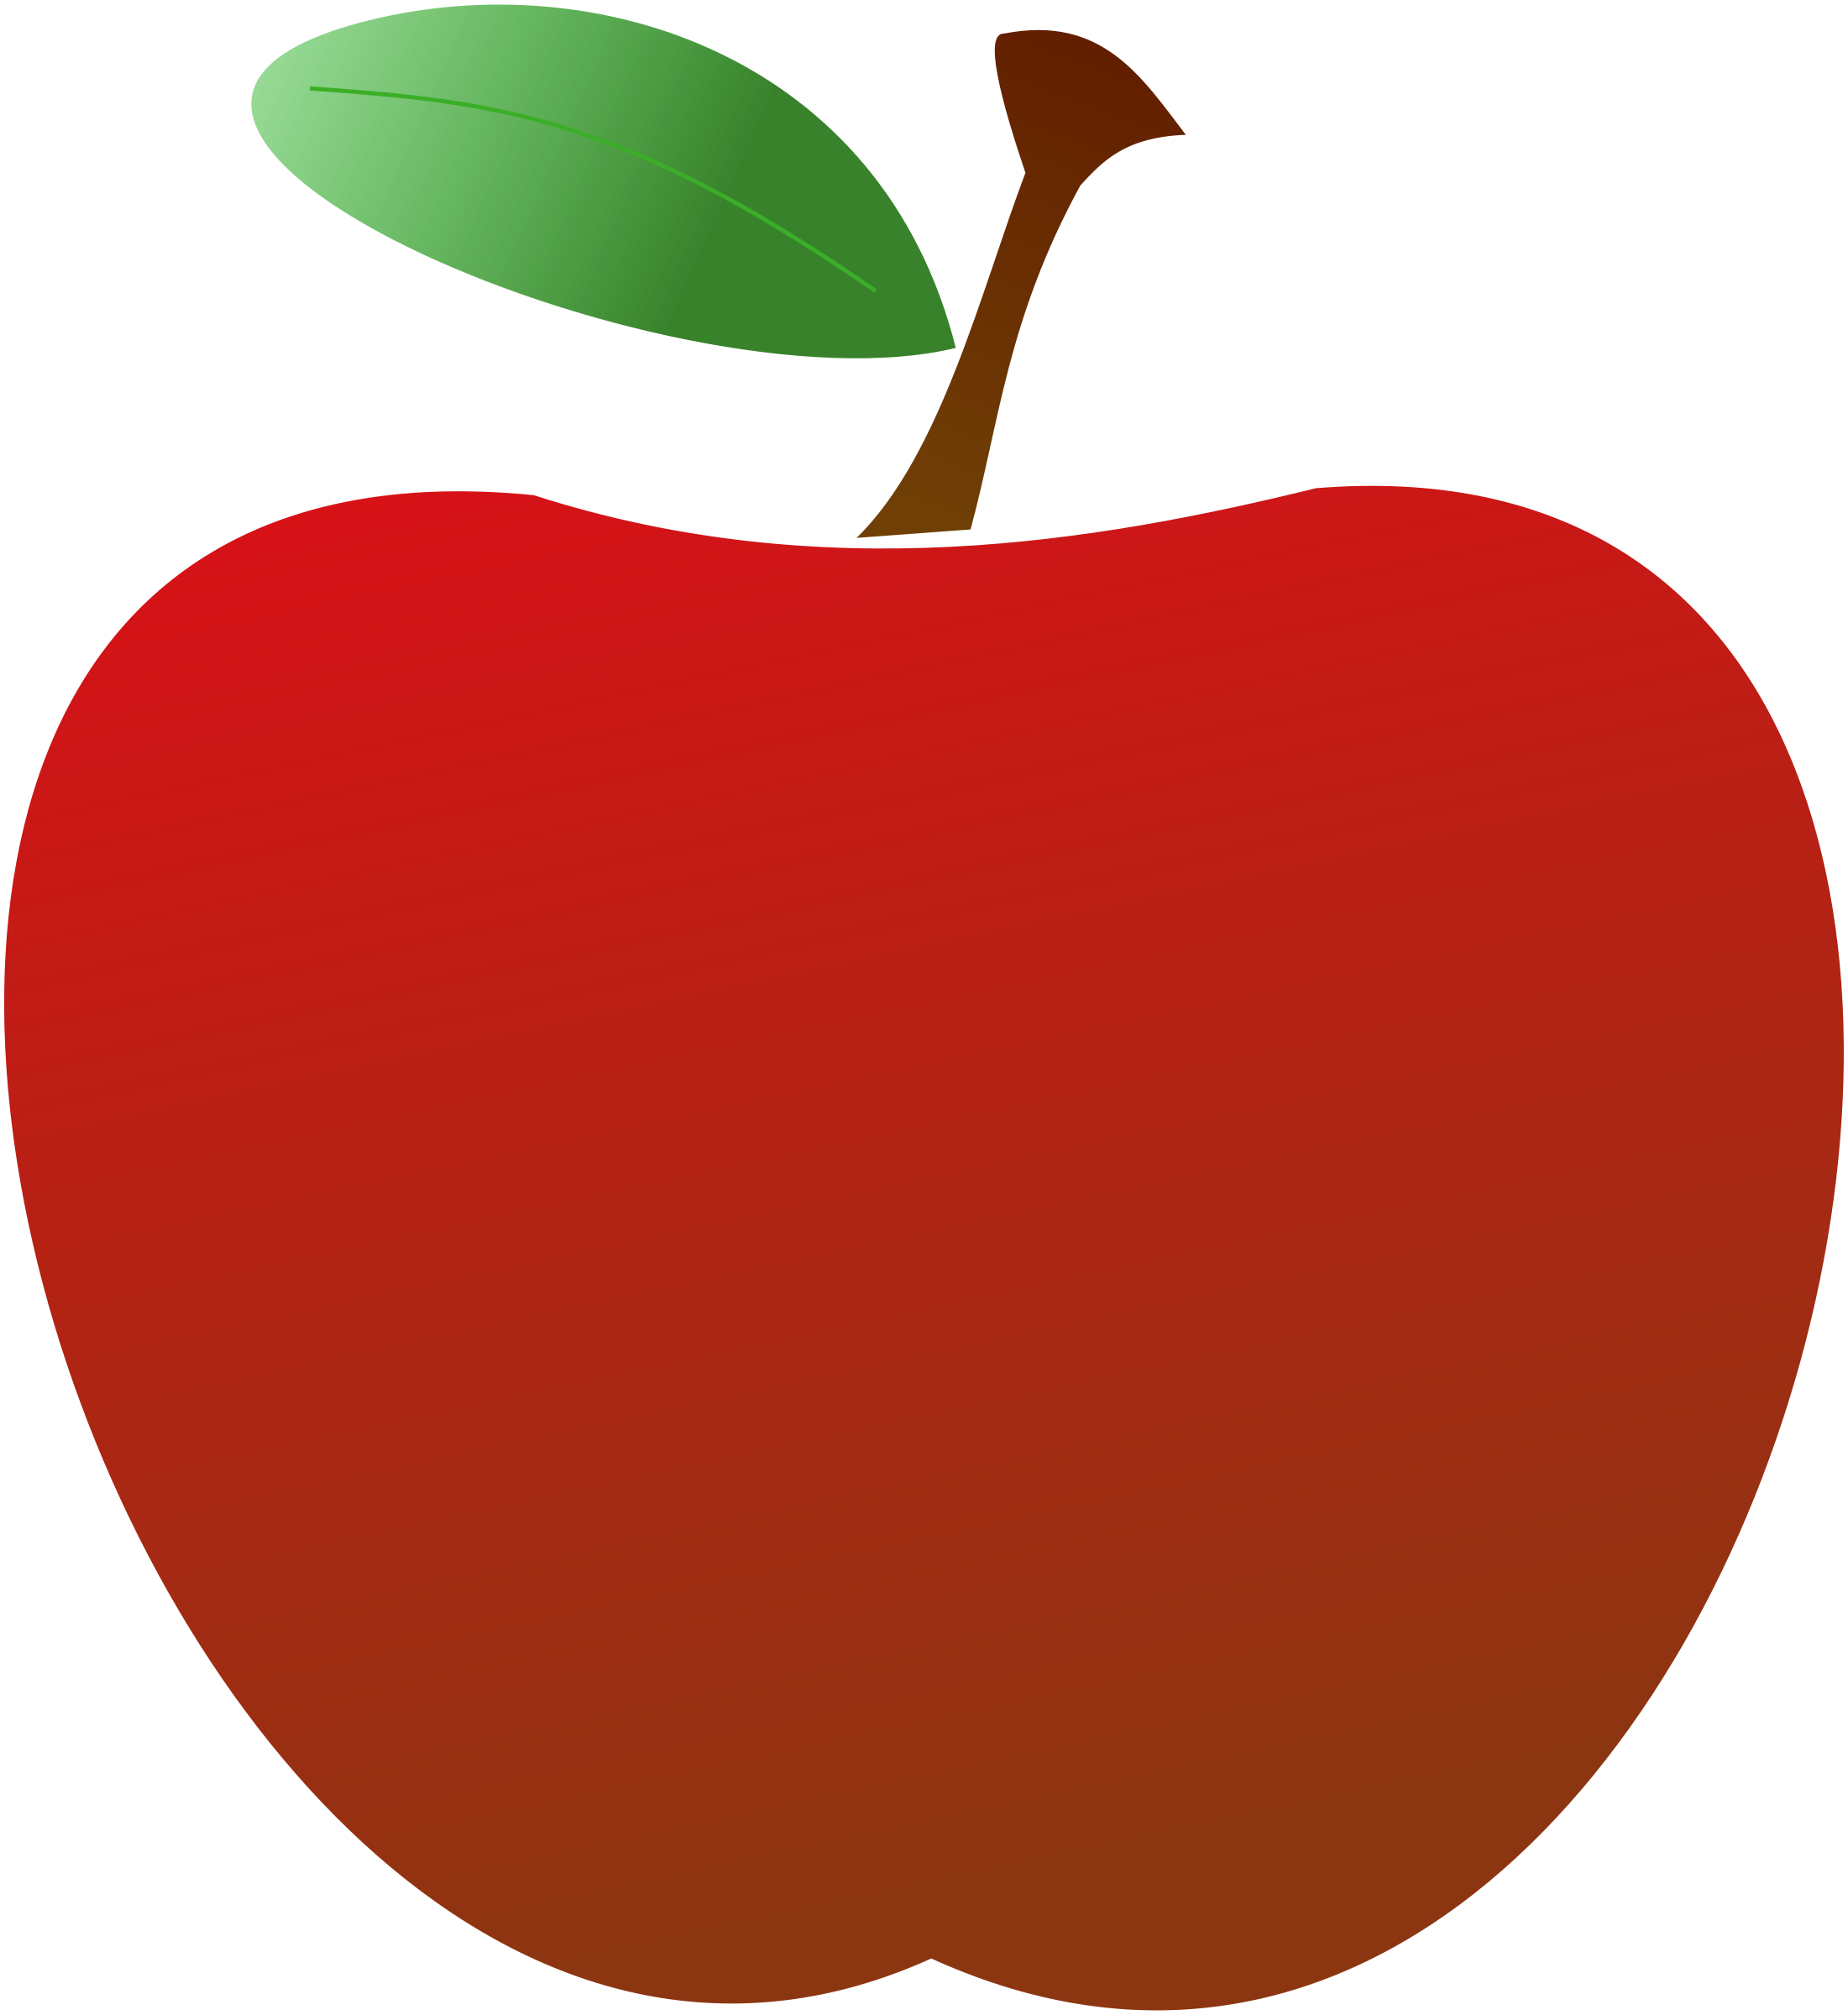 Free transparent apple clipart clip art royalty free library Teacher Apple Clipart | Clipart Panda - Free Clipart Images ... clip art royalty free library